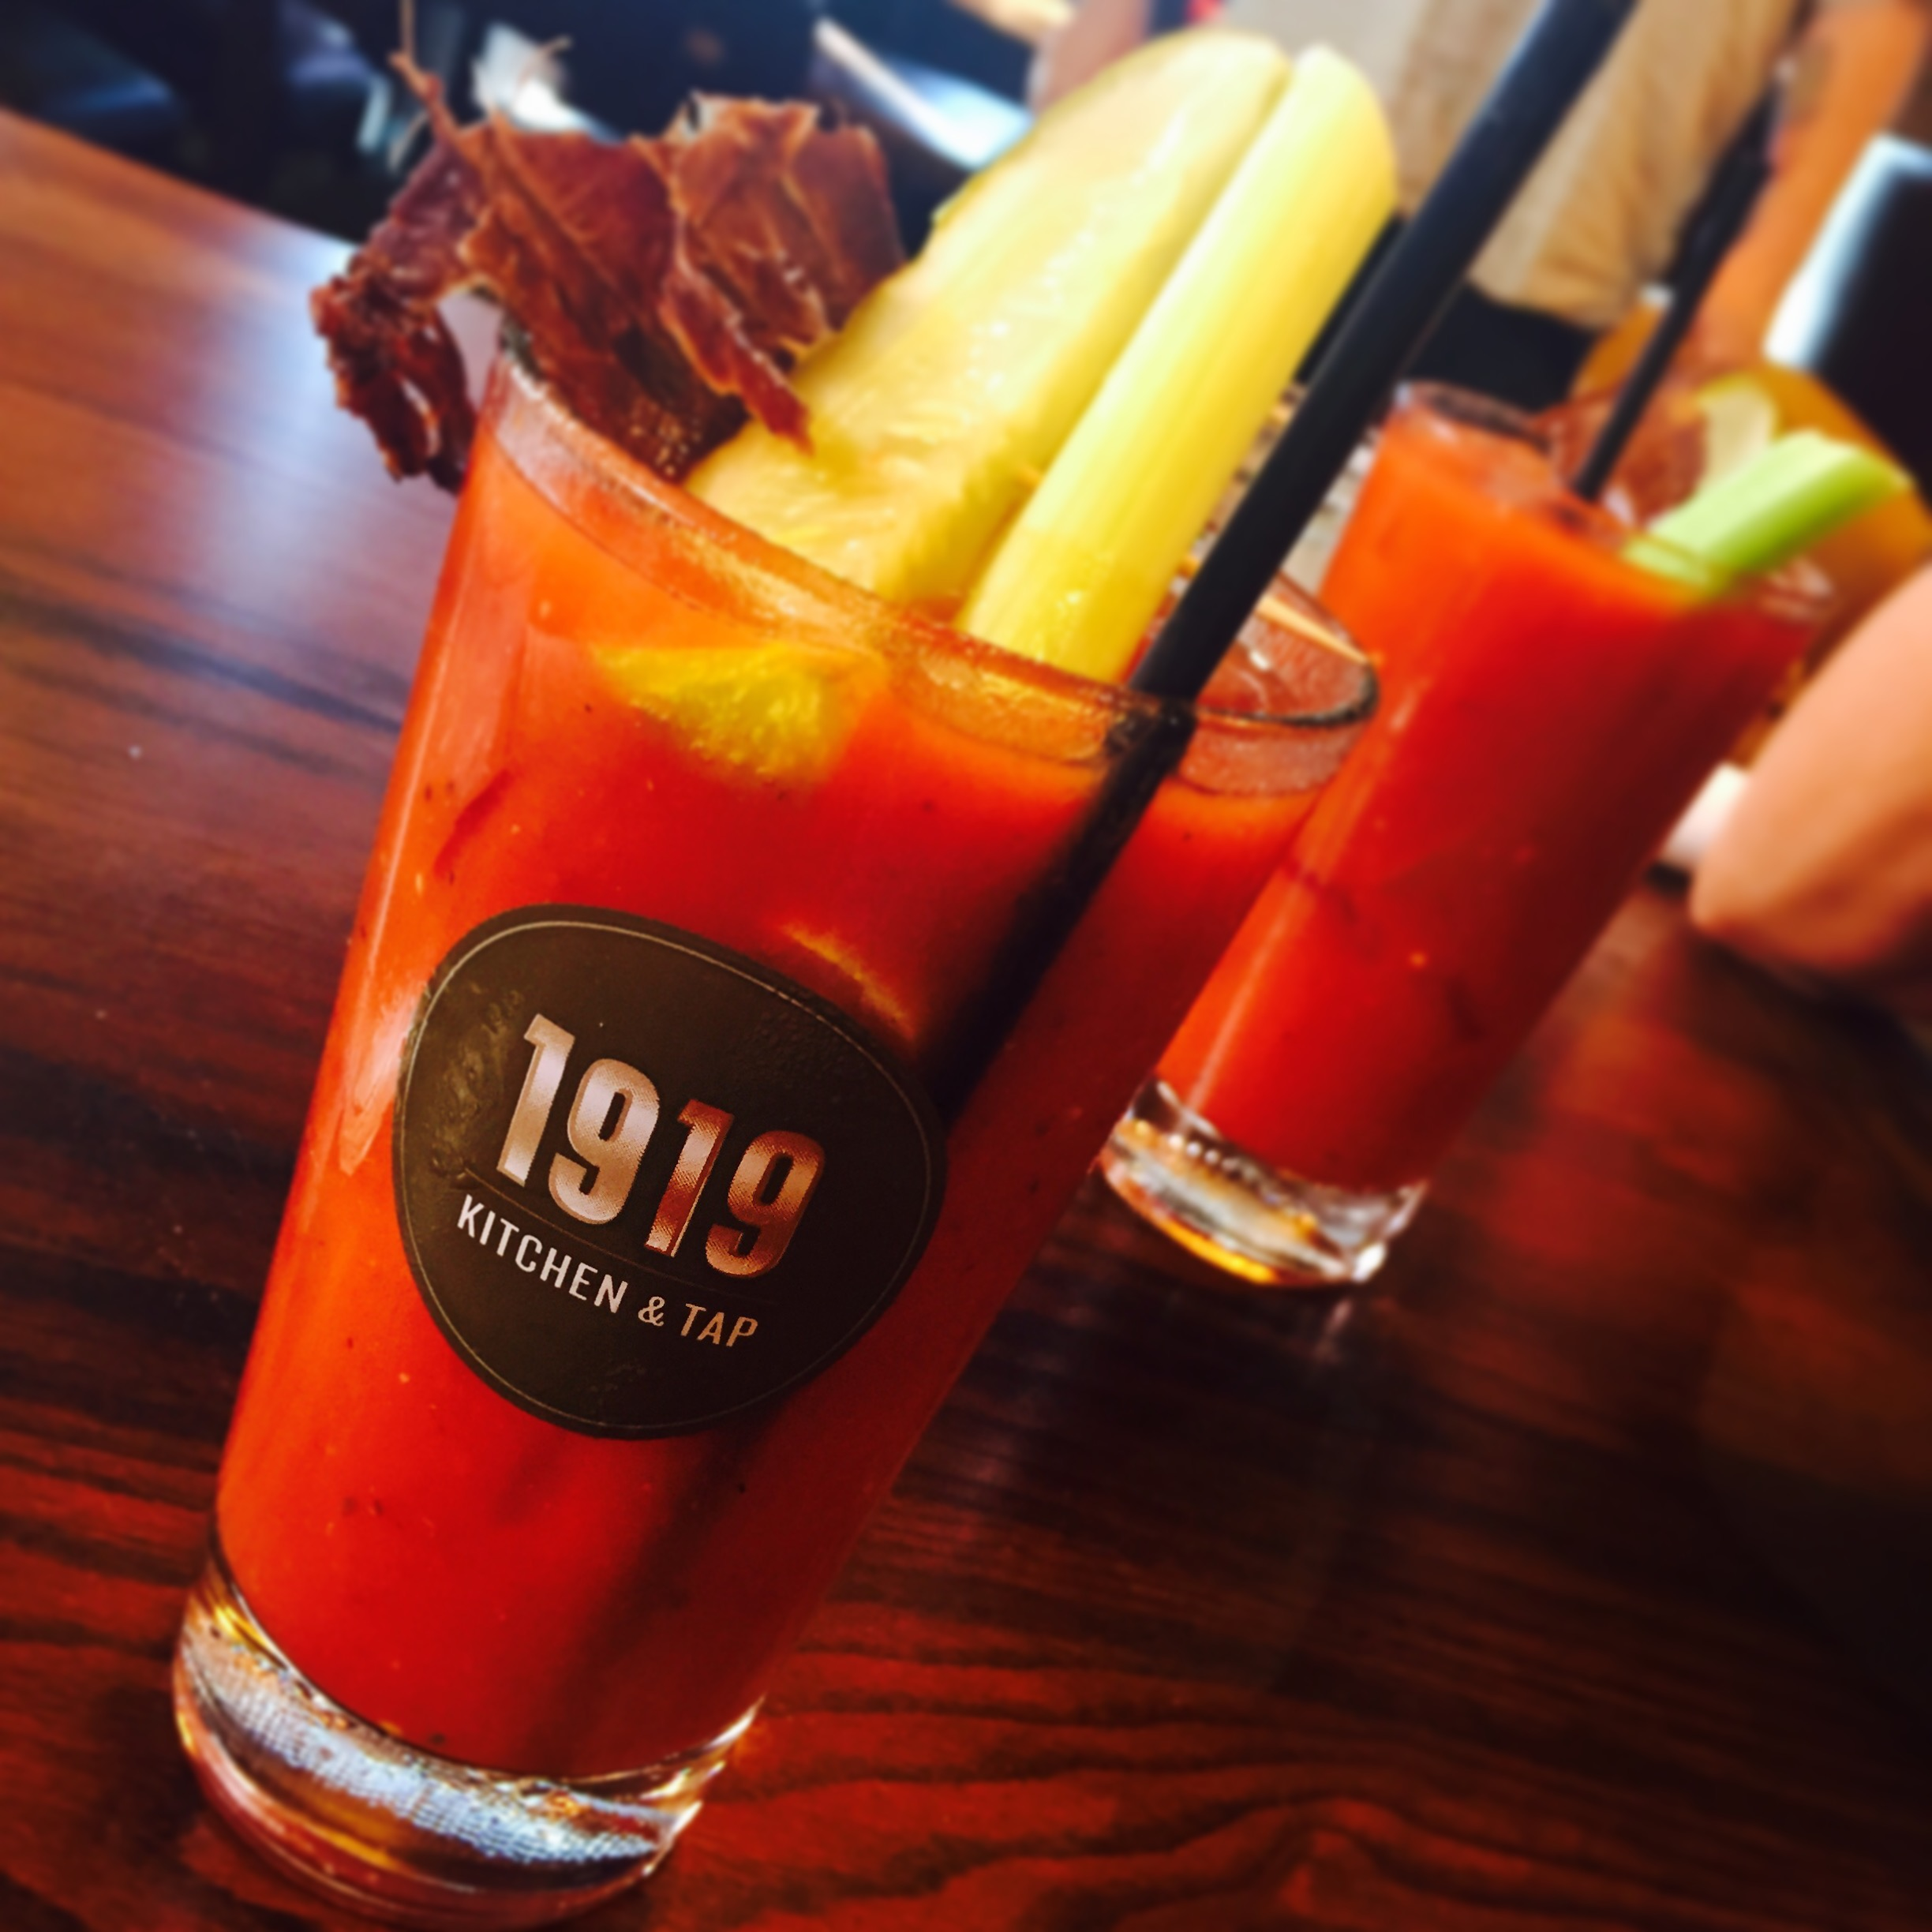 Enjoy A Delicious Bloody Mary At 1919 Kitchen And Tap At